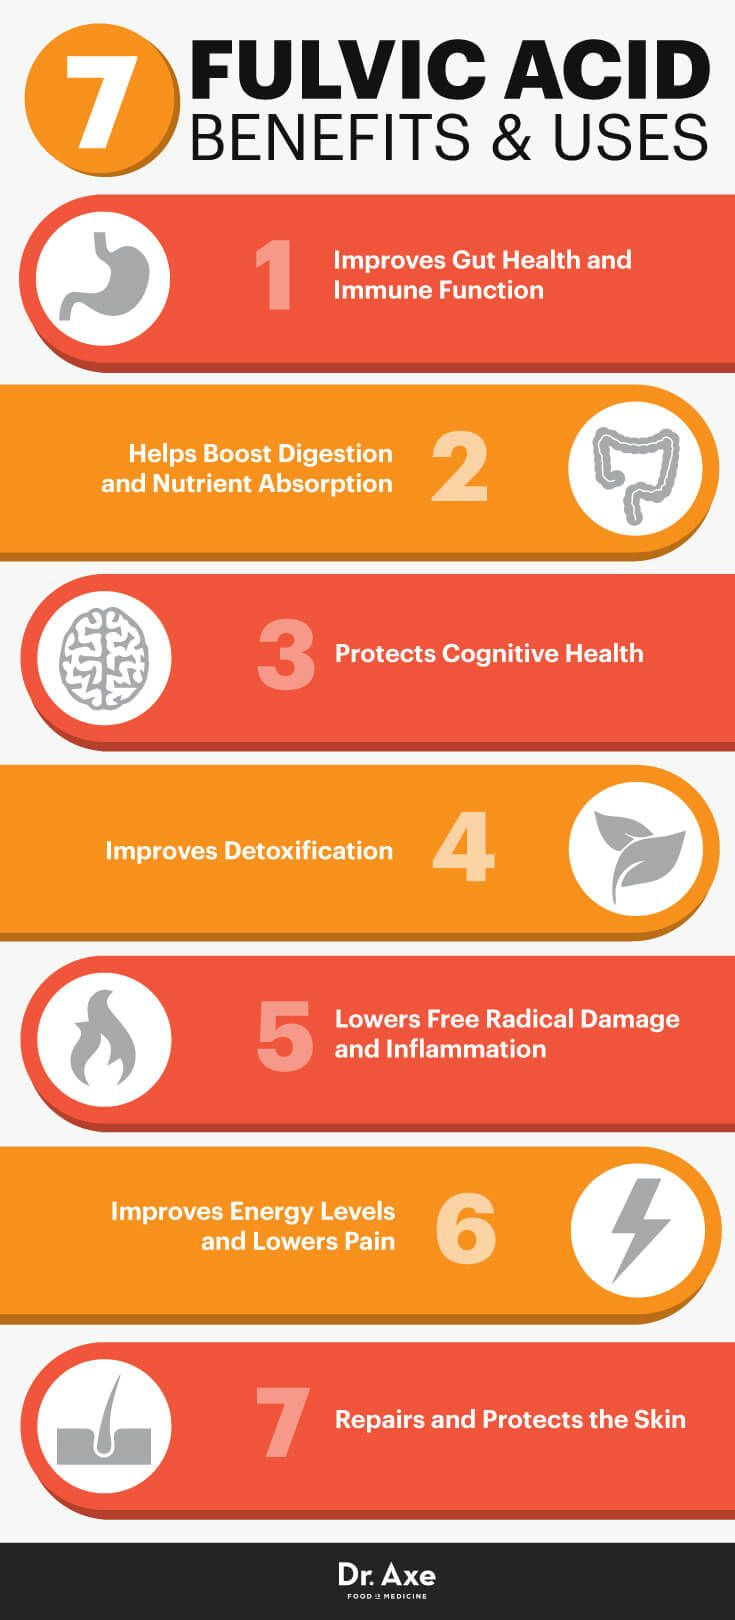 Fulvic acid benefits and uses - Dr. Axe http://www.draxe.com #health #holistic #natural